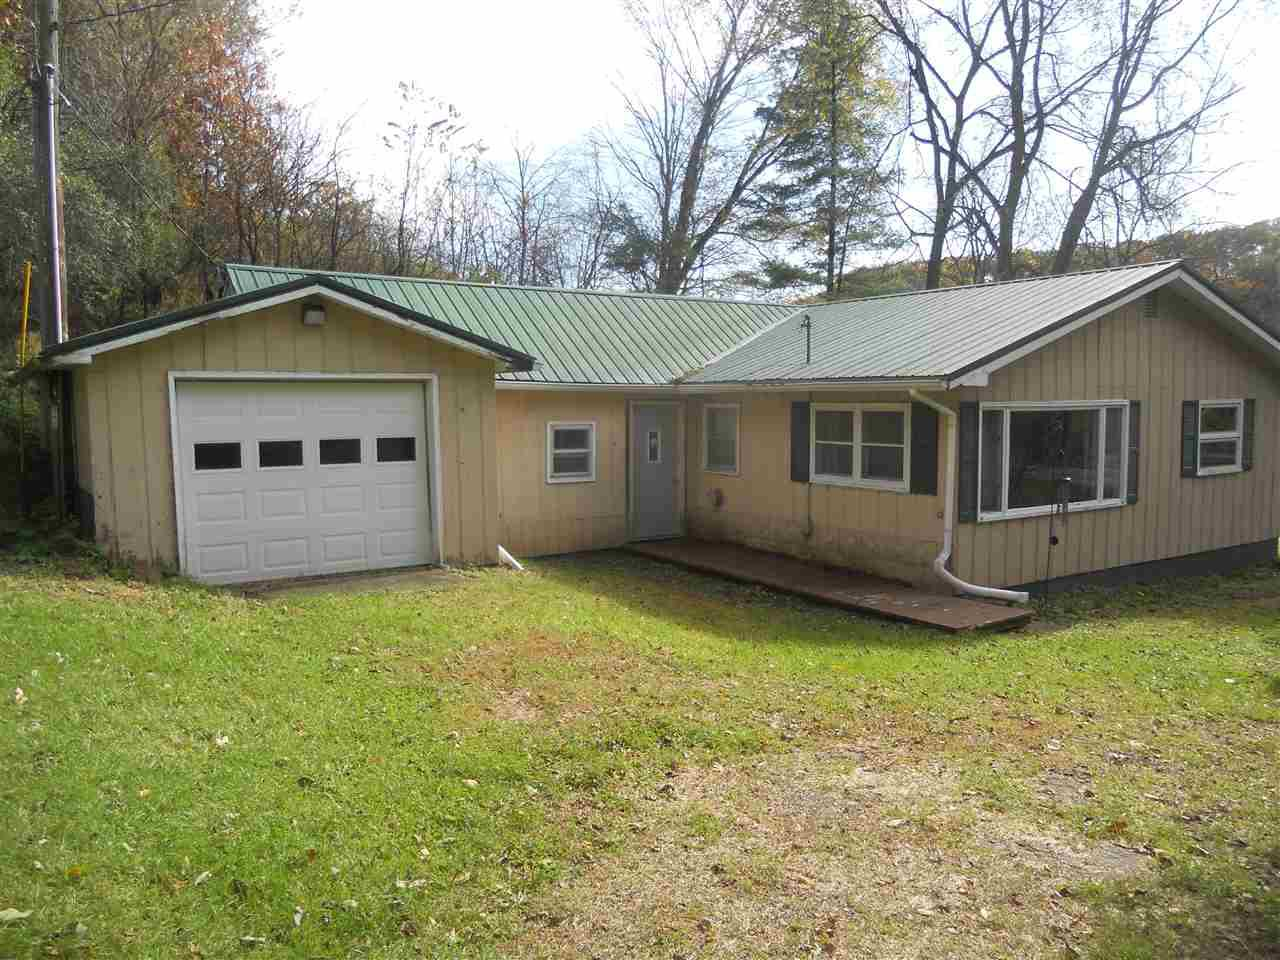 This 3 bedroom, 1 bath,  house/cabin sits on 12.23 acres. It features an attached garage, metal roof, new electric update, central air, and a detached 26 x 36 shed. The property also provides an excellent place to hunt. The property lines create a natural funnel for deer to move through and several deer trails converge on the acreage. You need to see it to believe it! It is also currently in in a closed managed forest program.